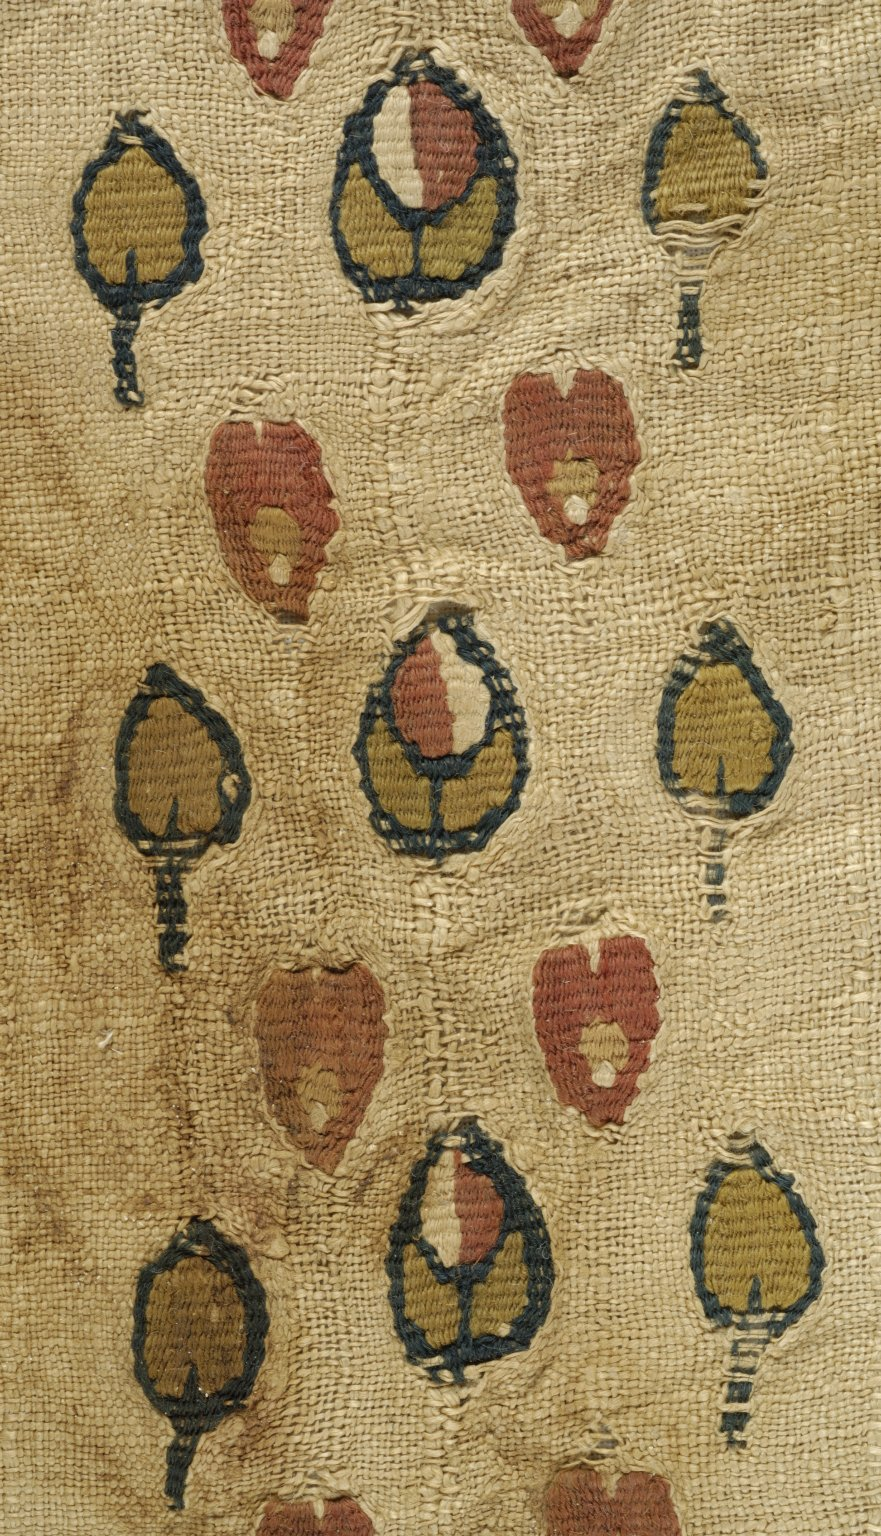 Fragment of Textile with Tapestry Woven Ornaments